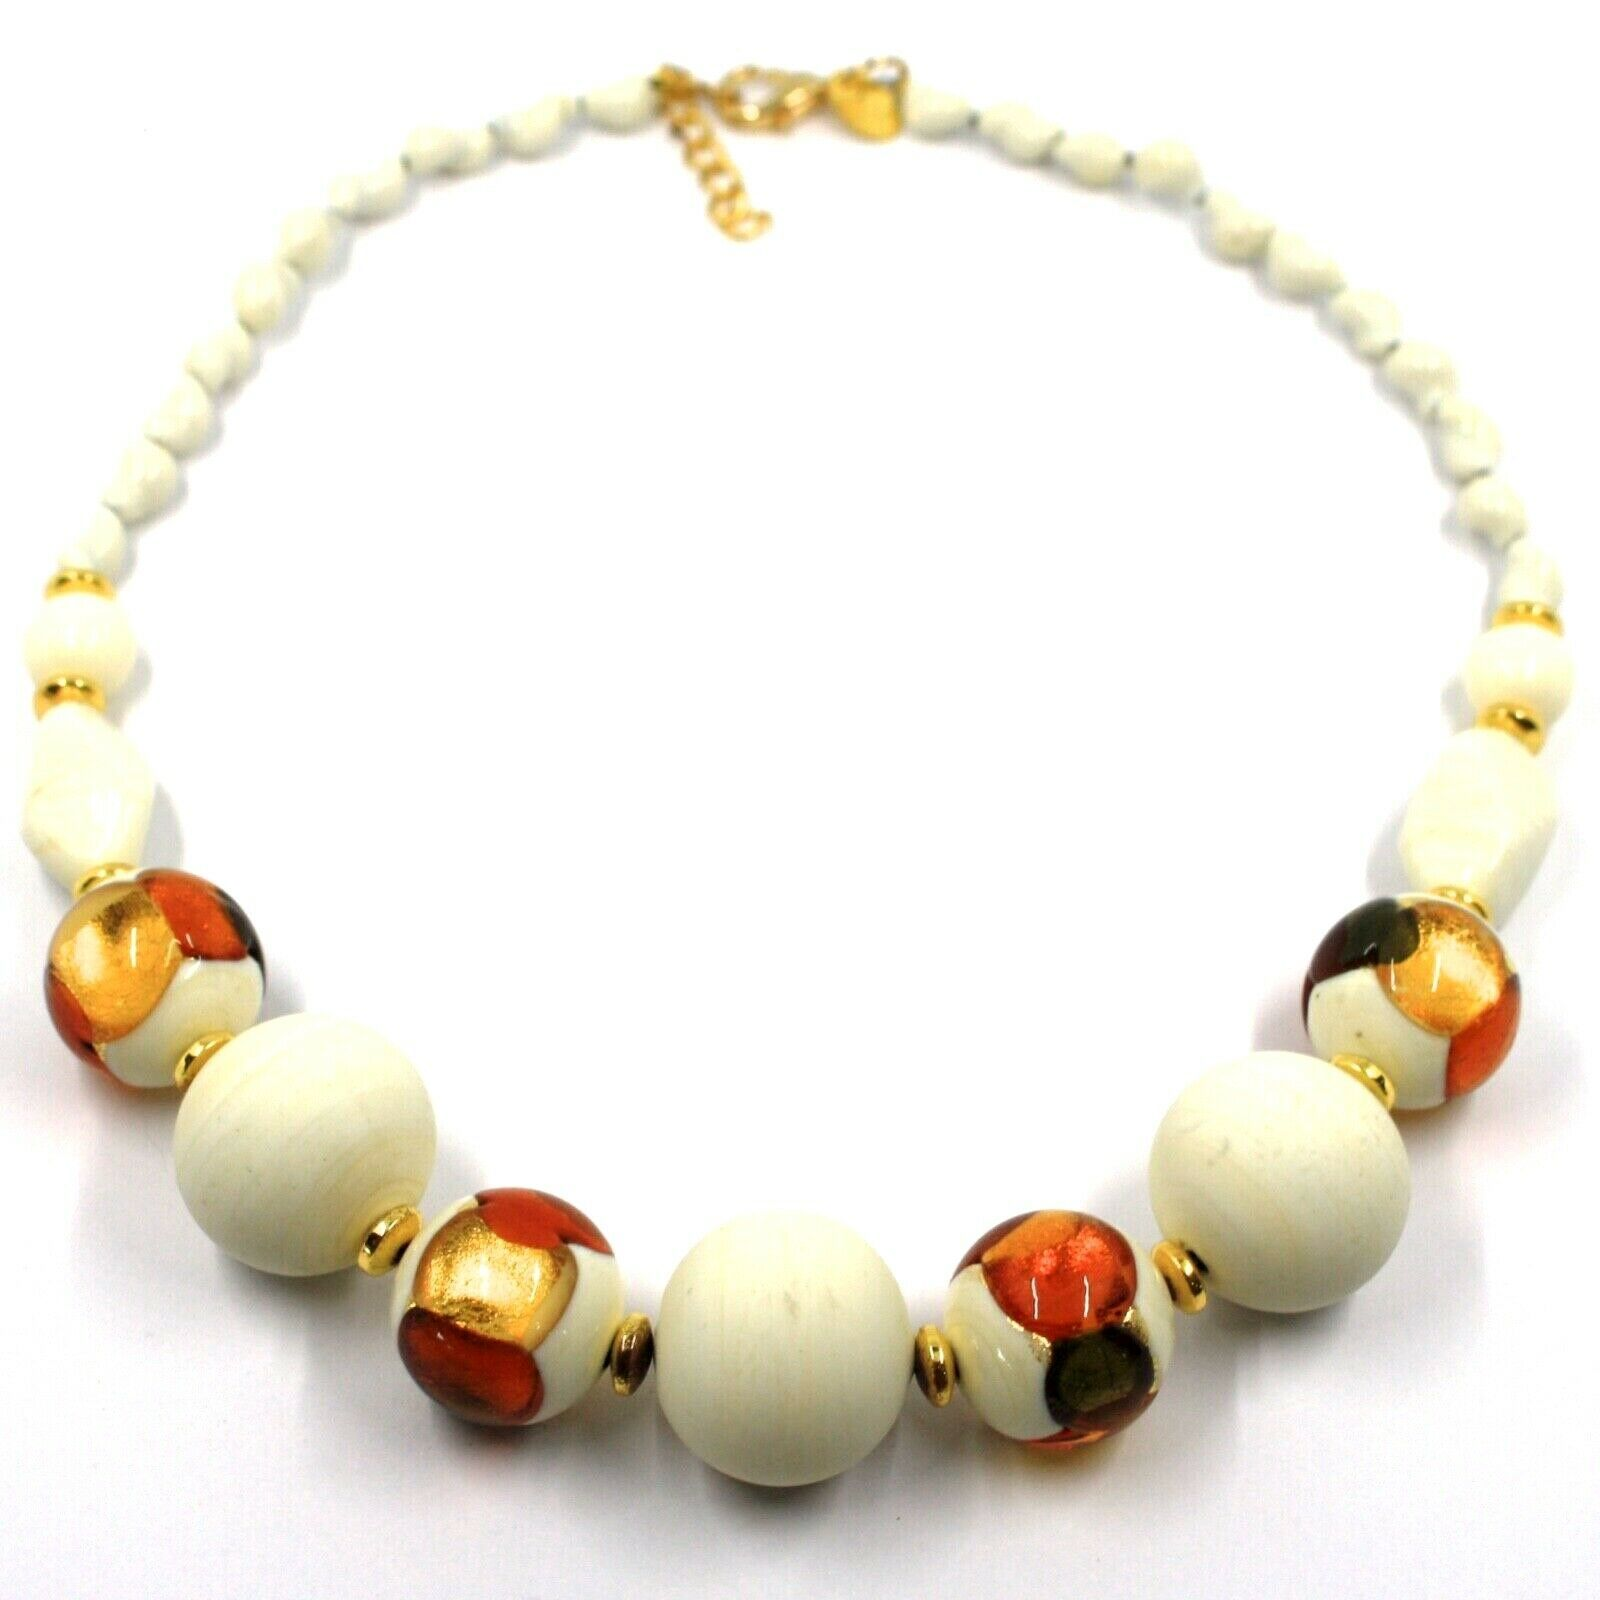 NECKLACE WHITE ORANGE MURANO GLASS SPHERE & GOLD LEAF, MADE IN ITALY, 42 cm